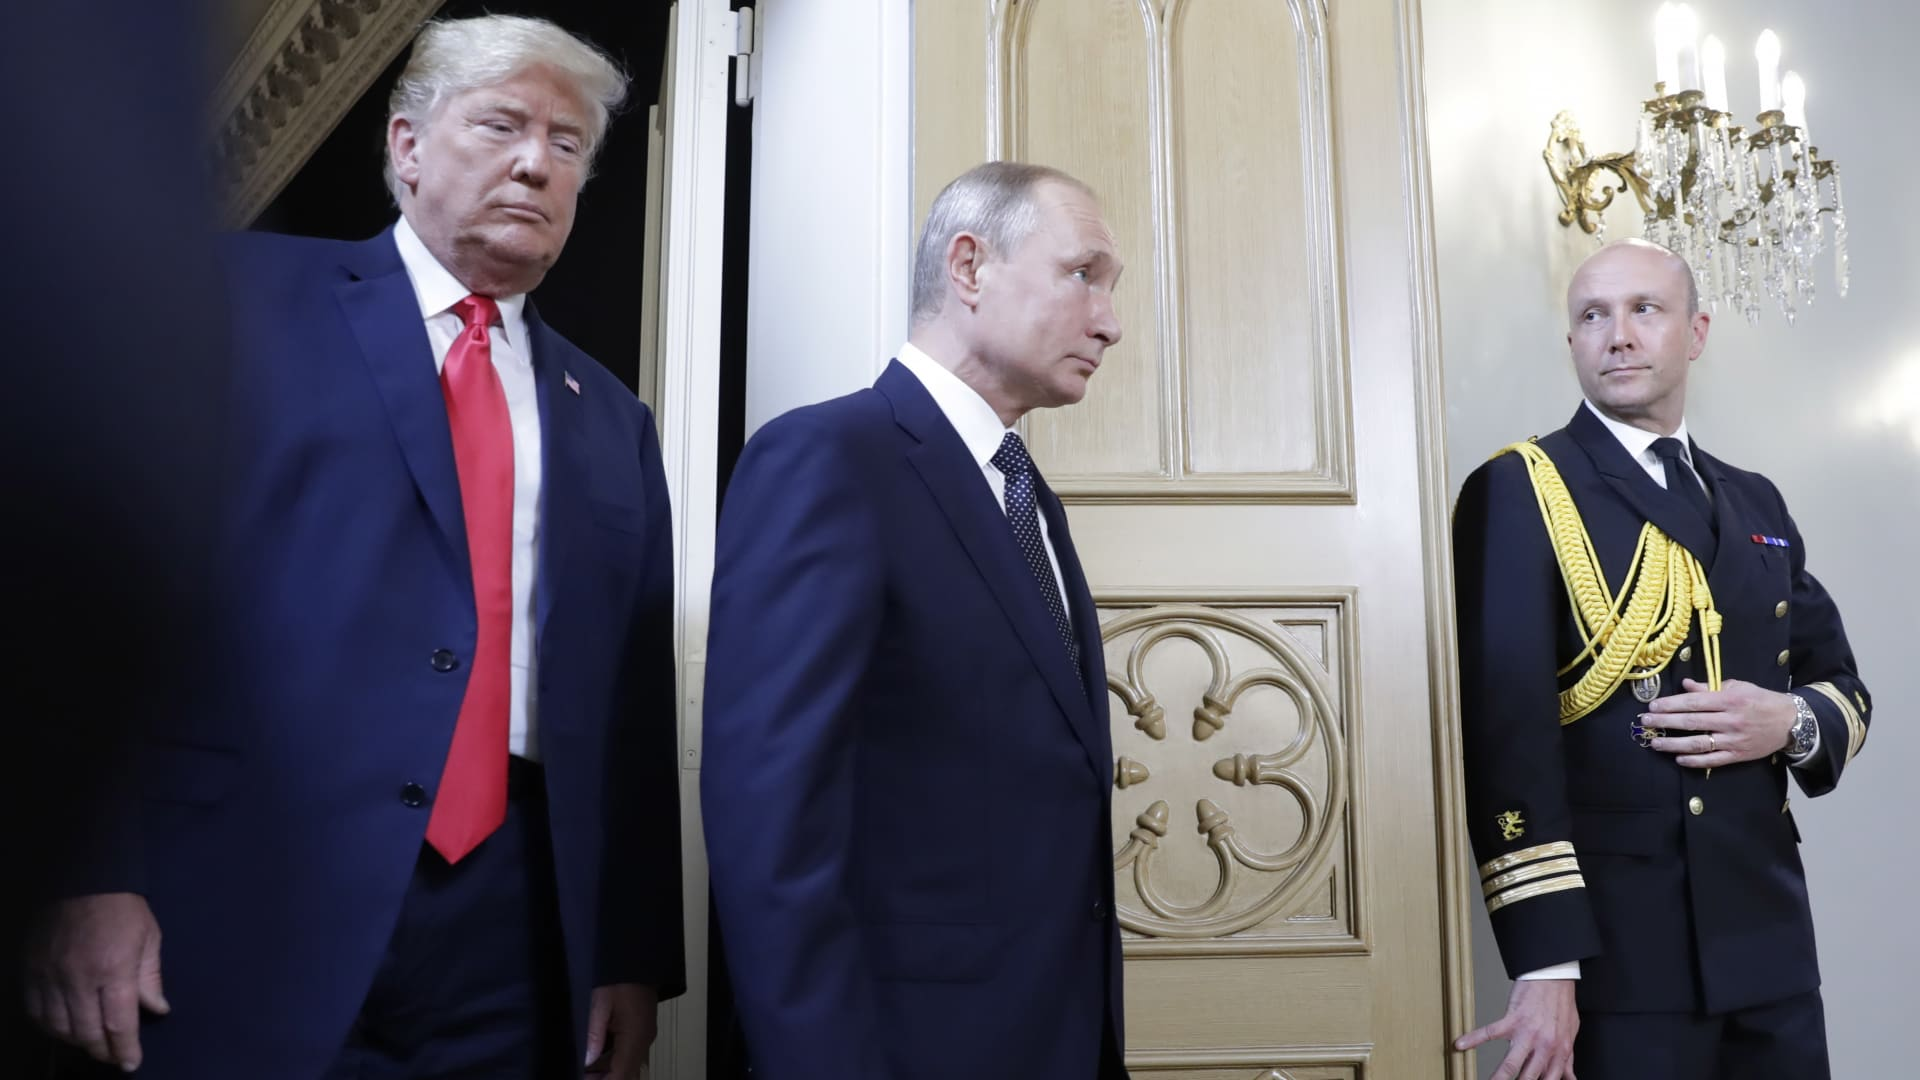 President Donald Trump (L) and Russia's President Vladimir Putin during a meeting at the Presidential Palace in Helsinki, July 16, 2018.